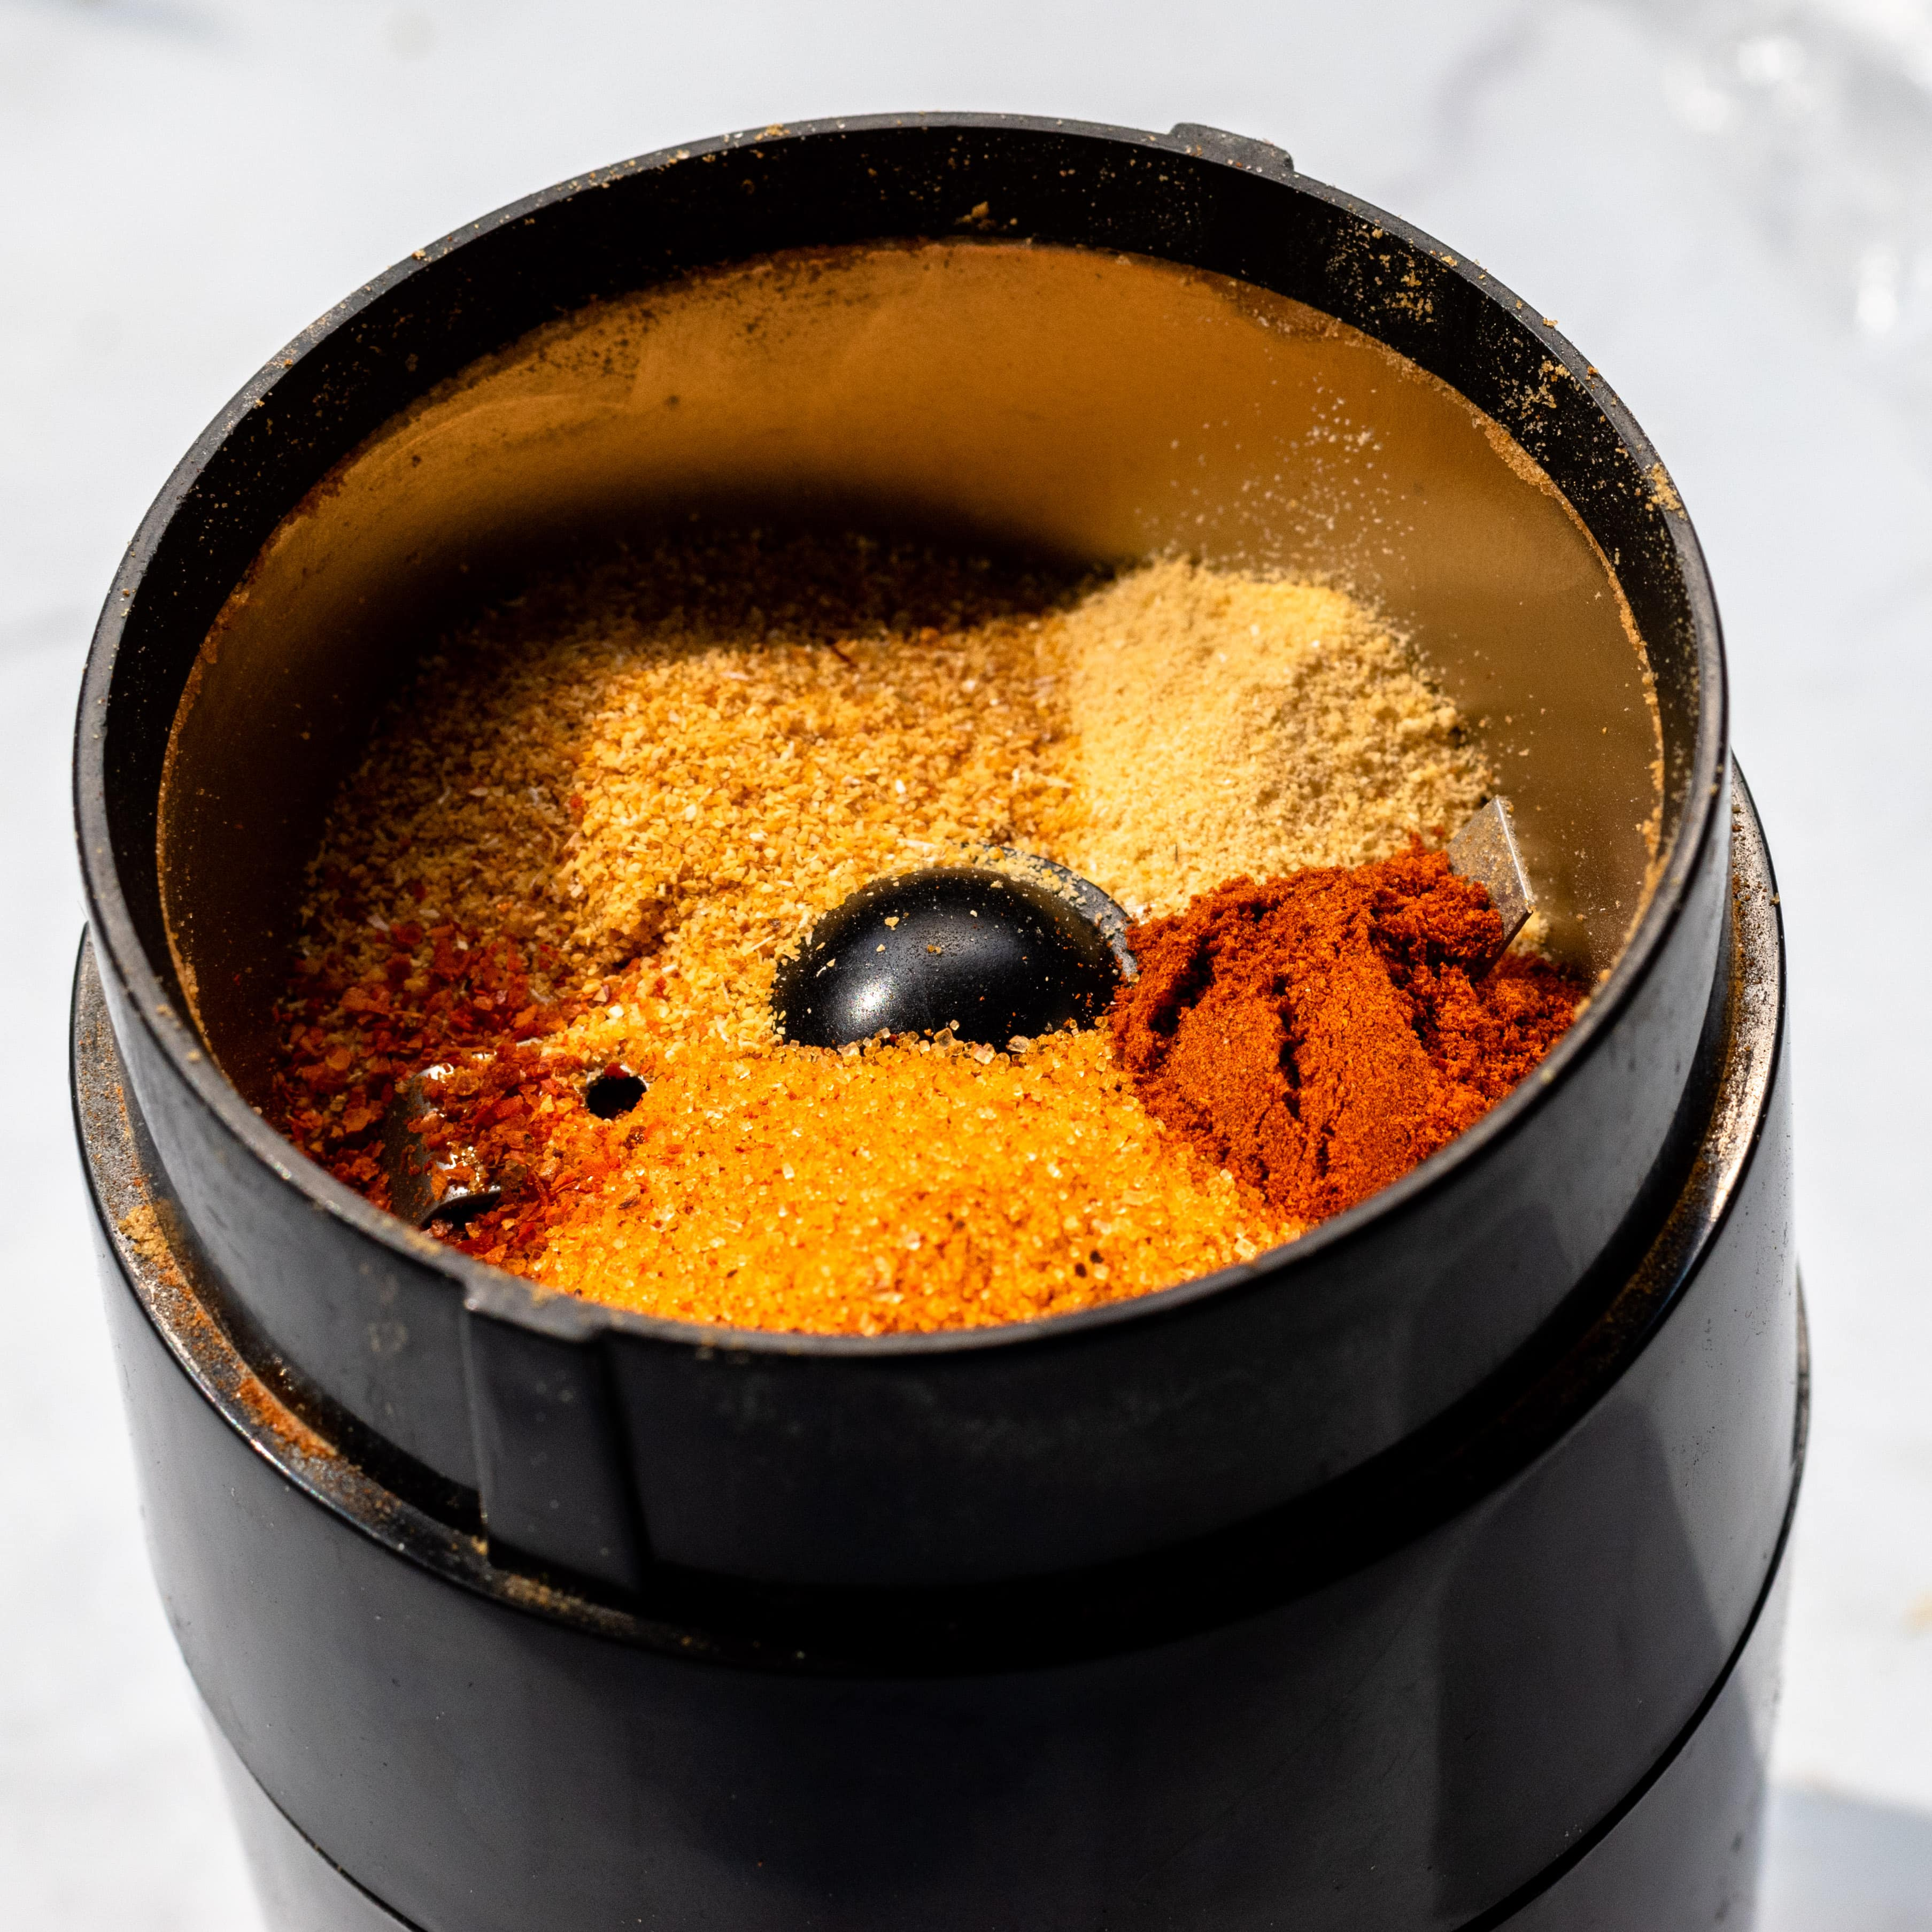 a close up of the seasoned salt, garlic powder, onion powder, paprika, and chili powder in a coffee grinder before grinding them